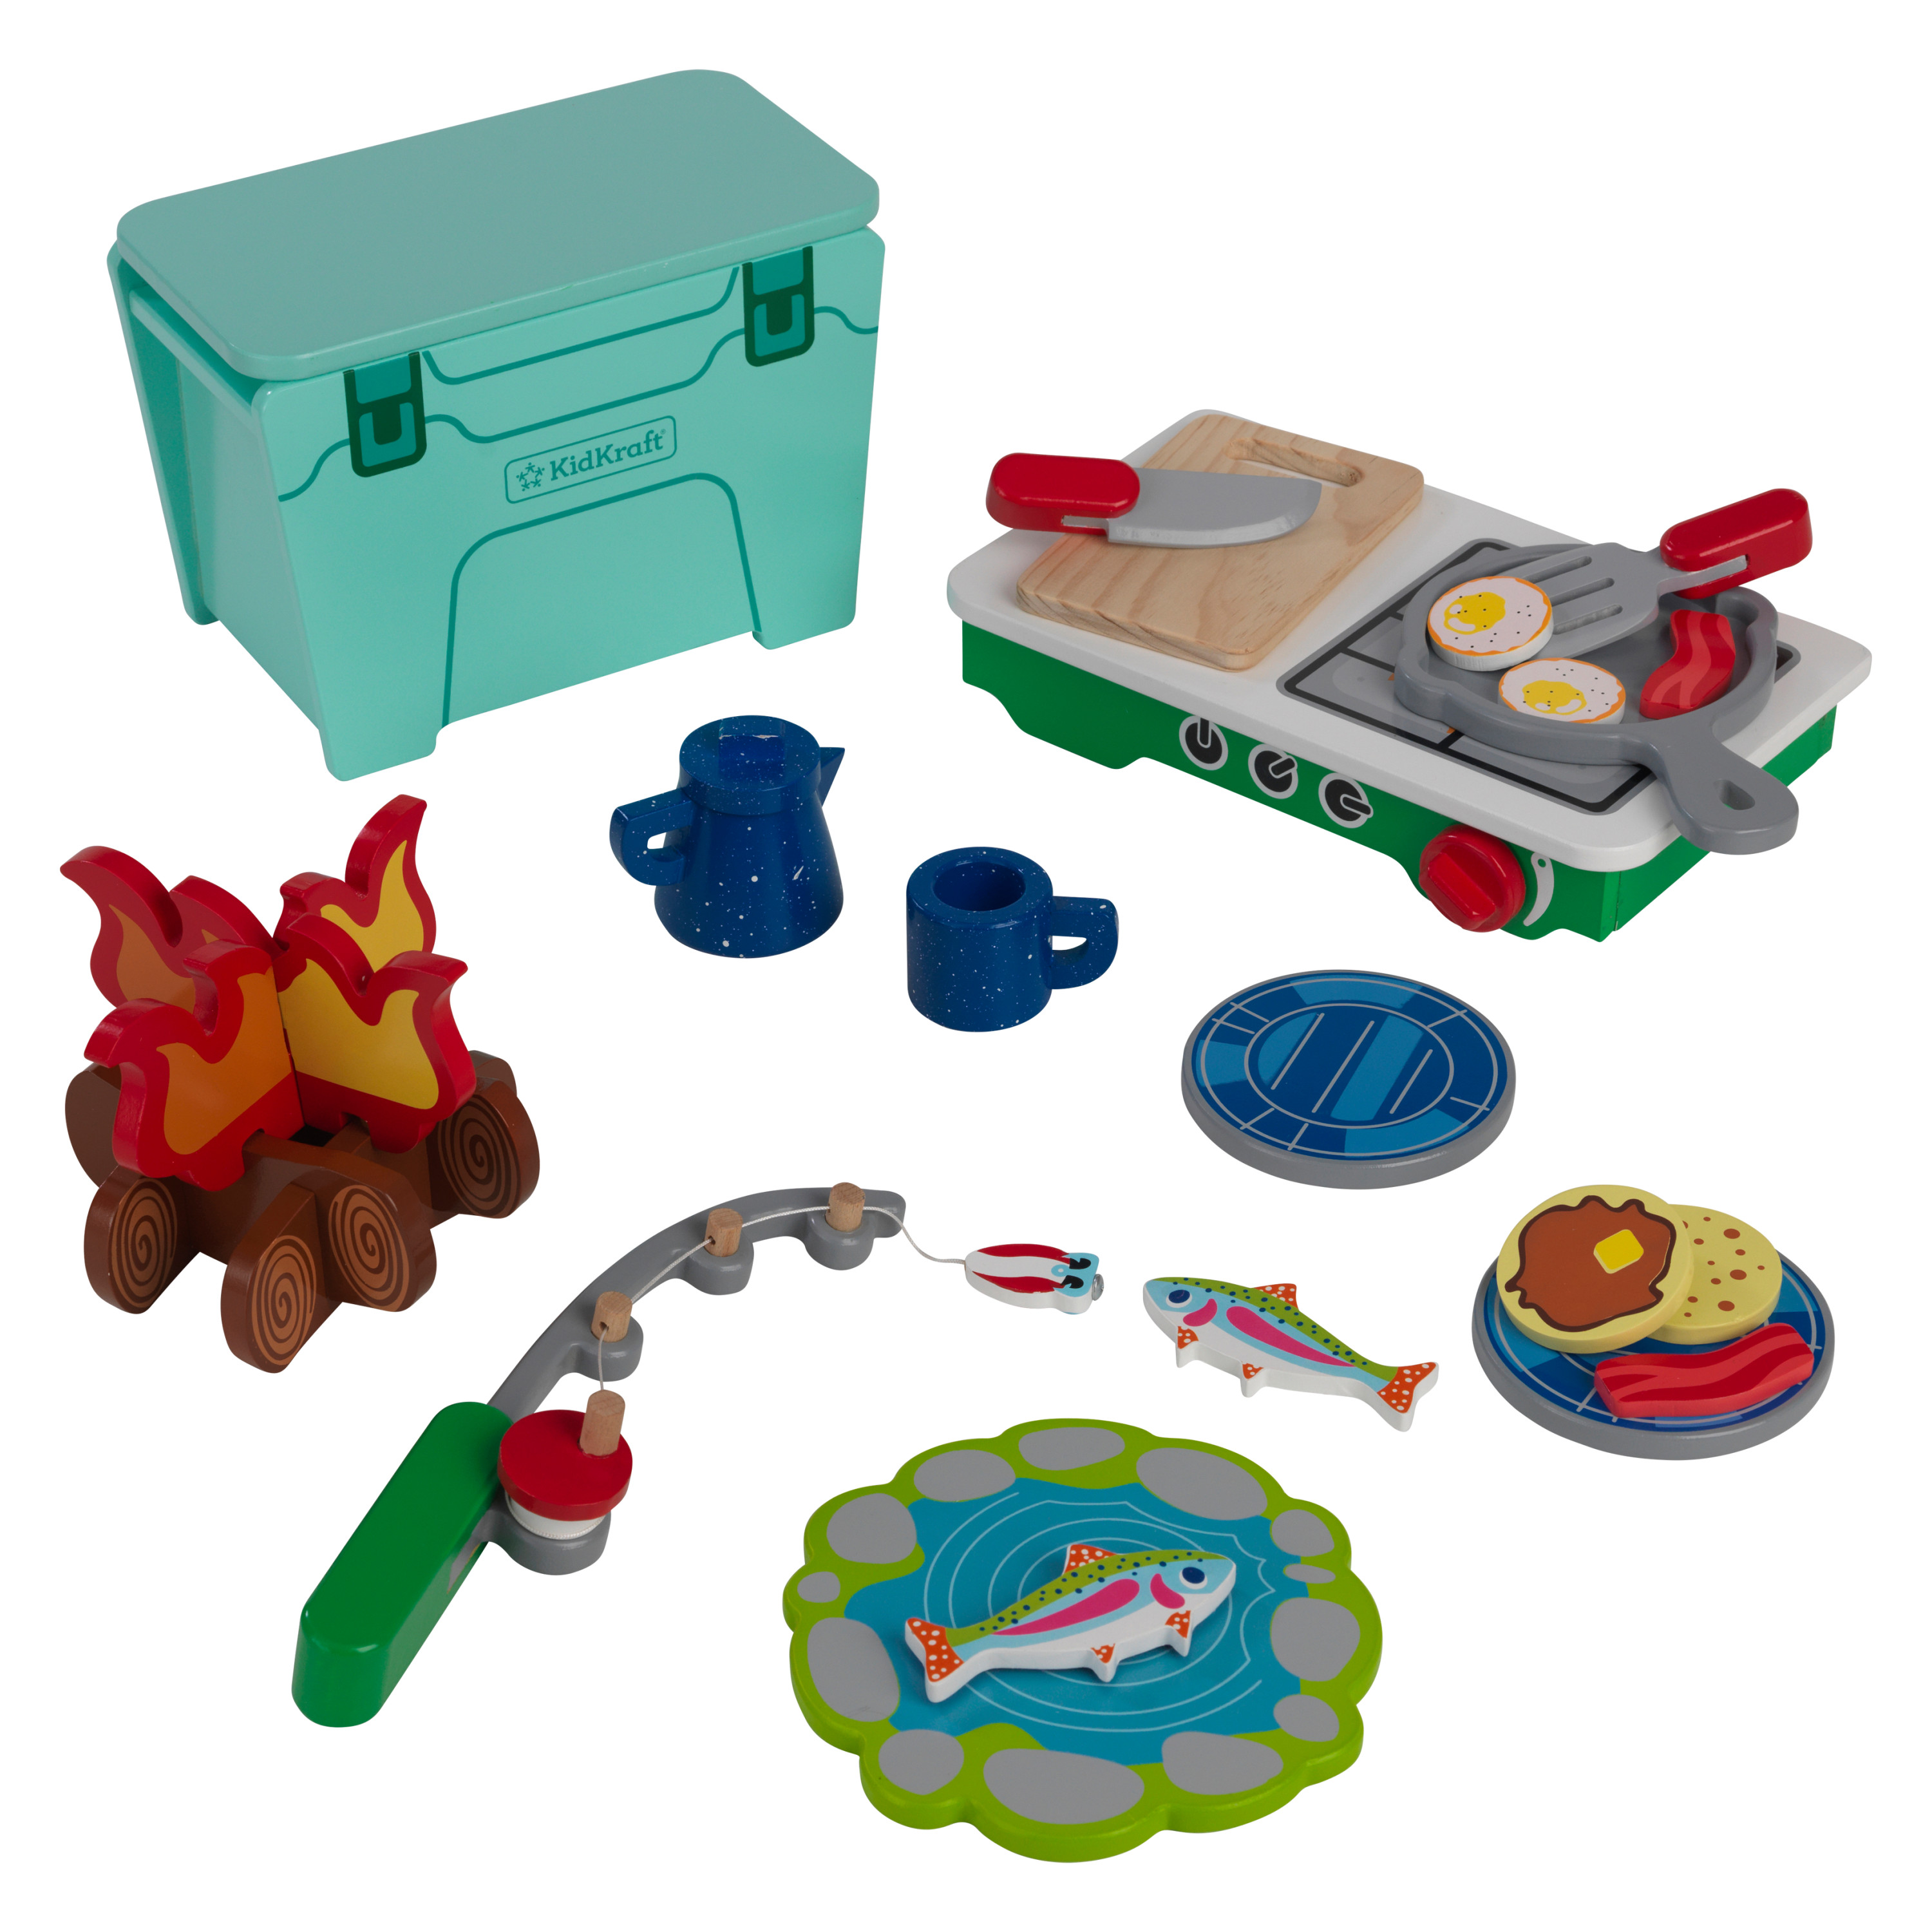 Kidkraft - Lets Pretend: Camping Cookout